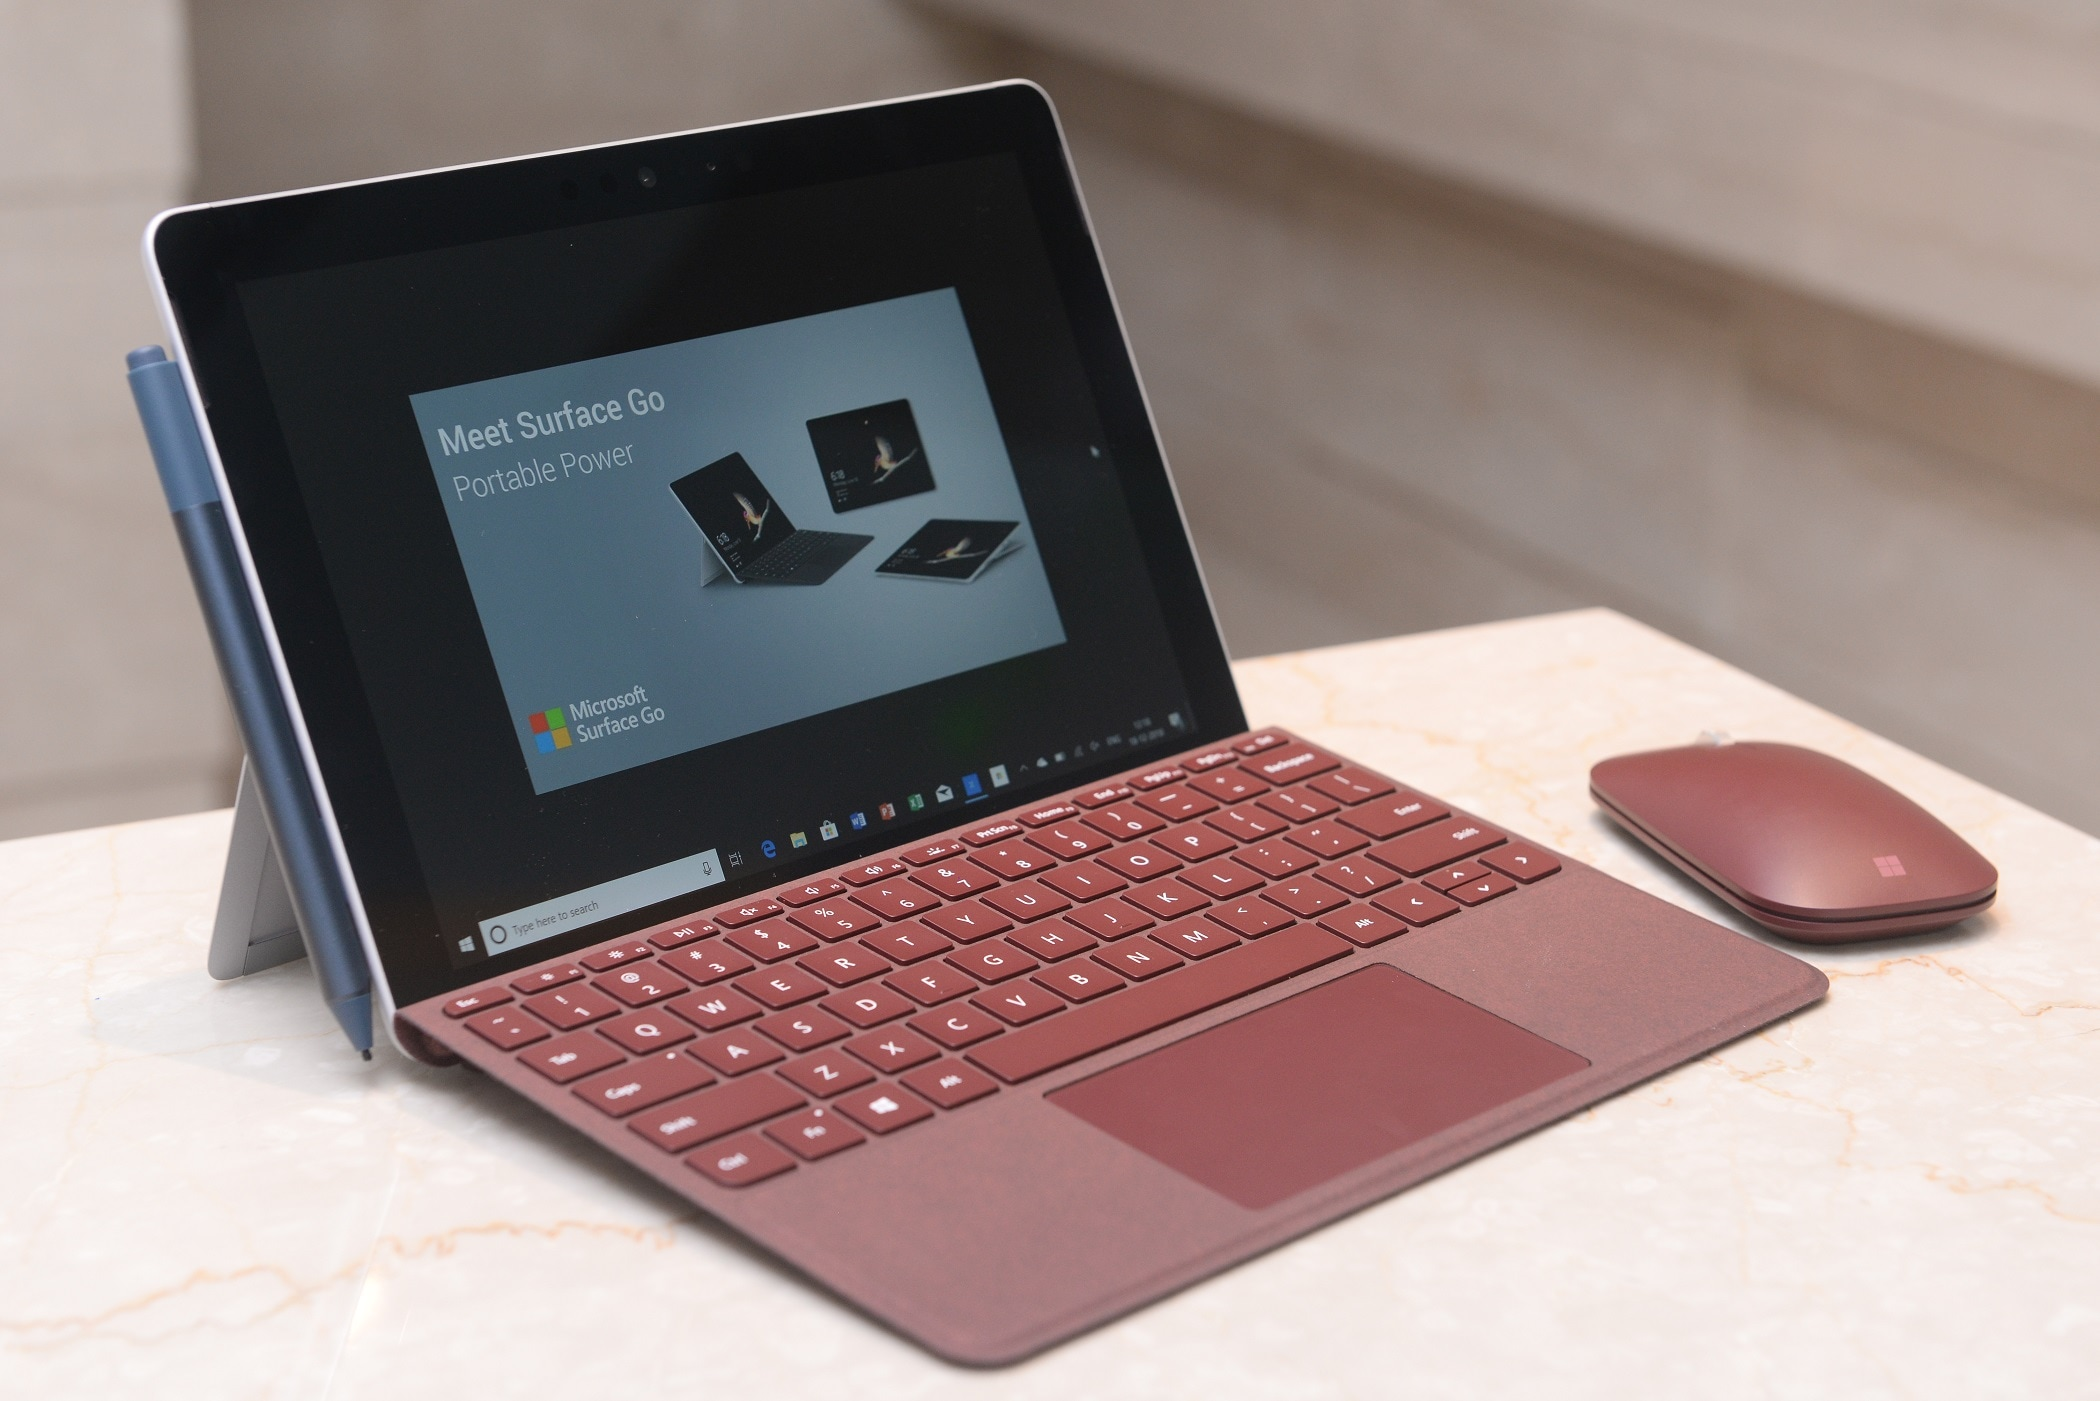 Surface Go to add big to our growth in 2019: Microsoft India